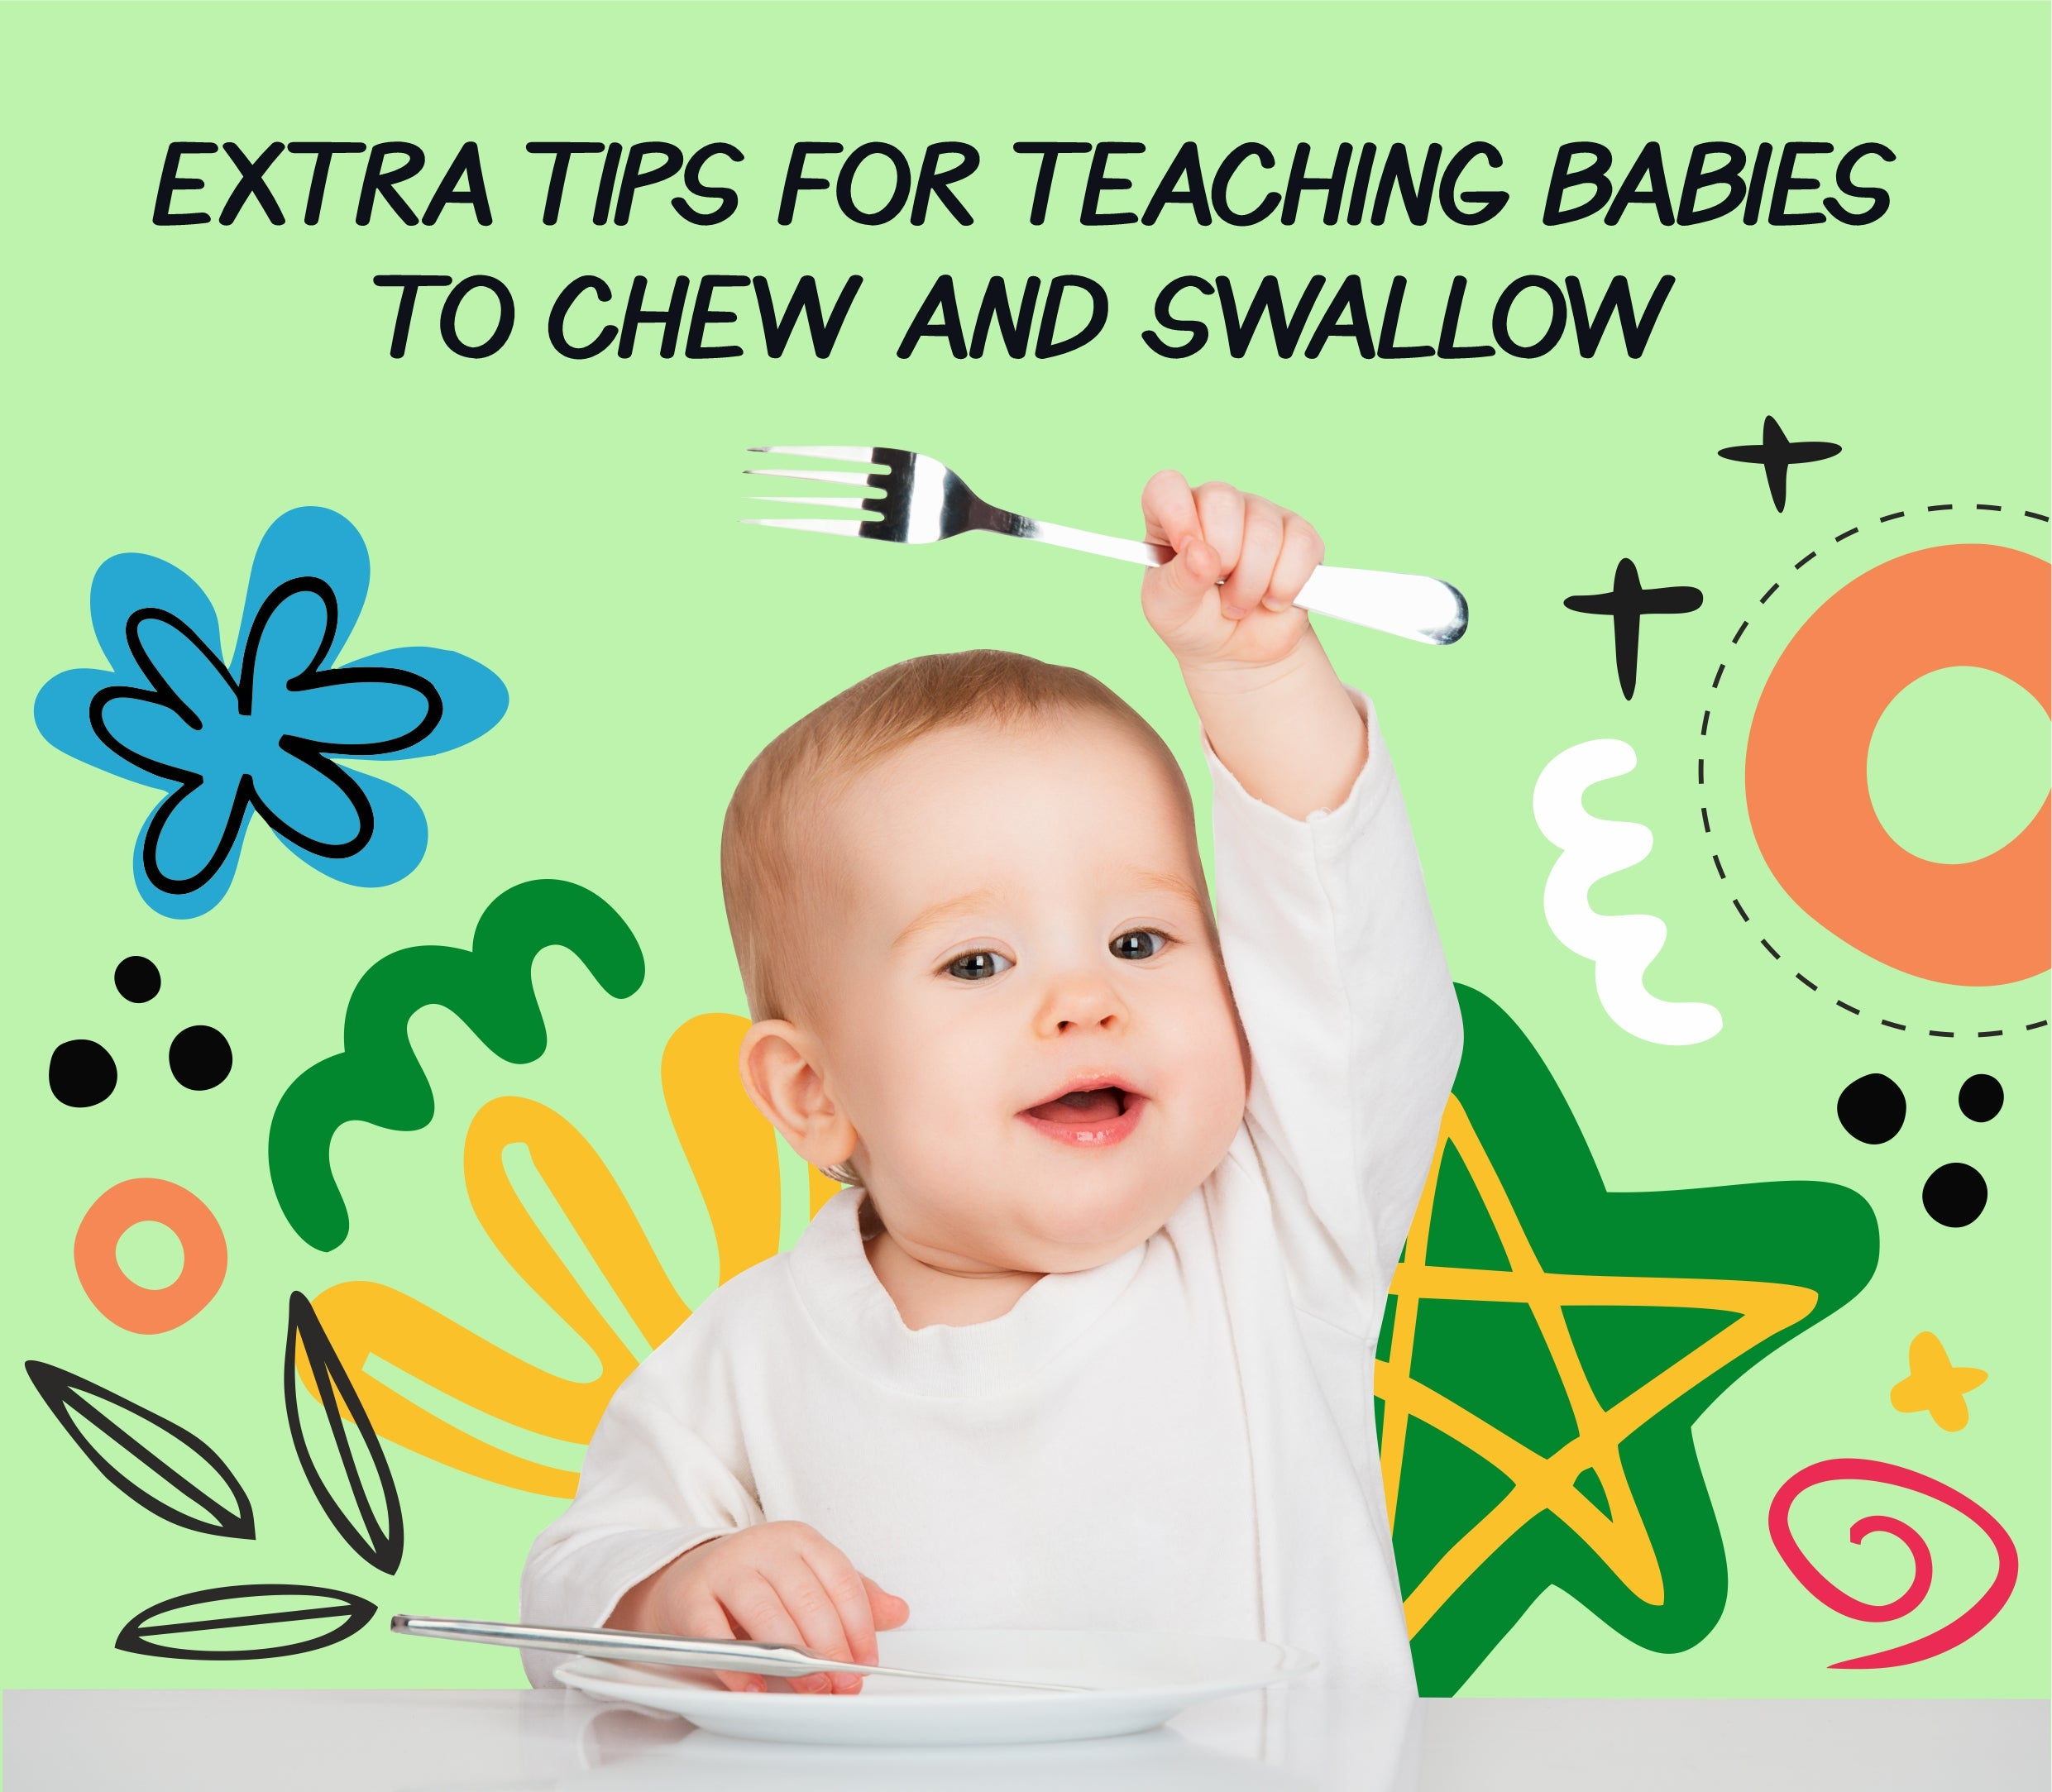 Extra tips for teaching babies to chew and swallow